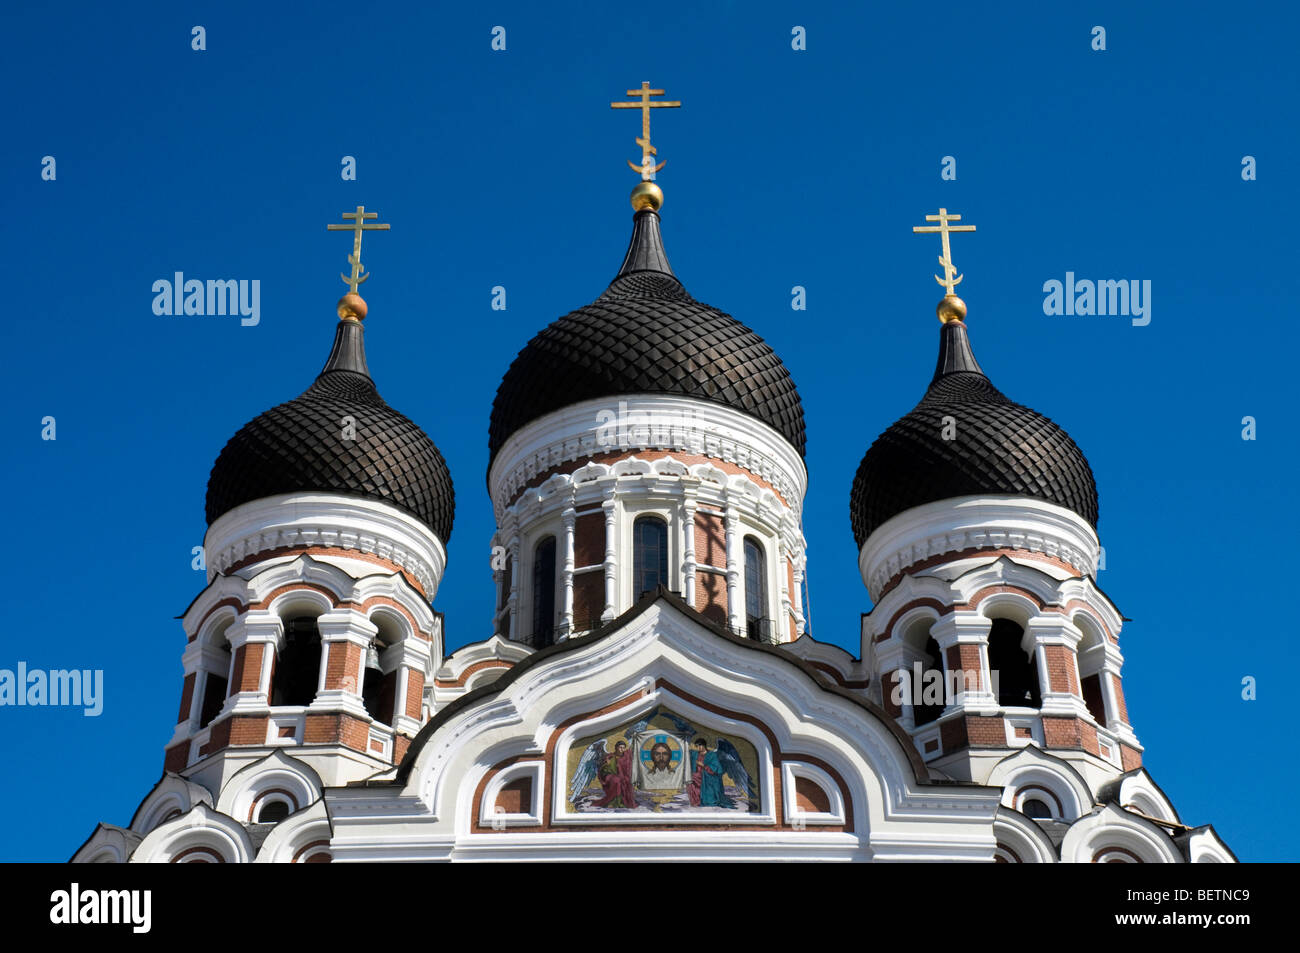 The onion-shaped cupolas of the Russian Orthodox Cathedral Alexander Nevsky, Tallinn, Estonia - Stock Image